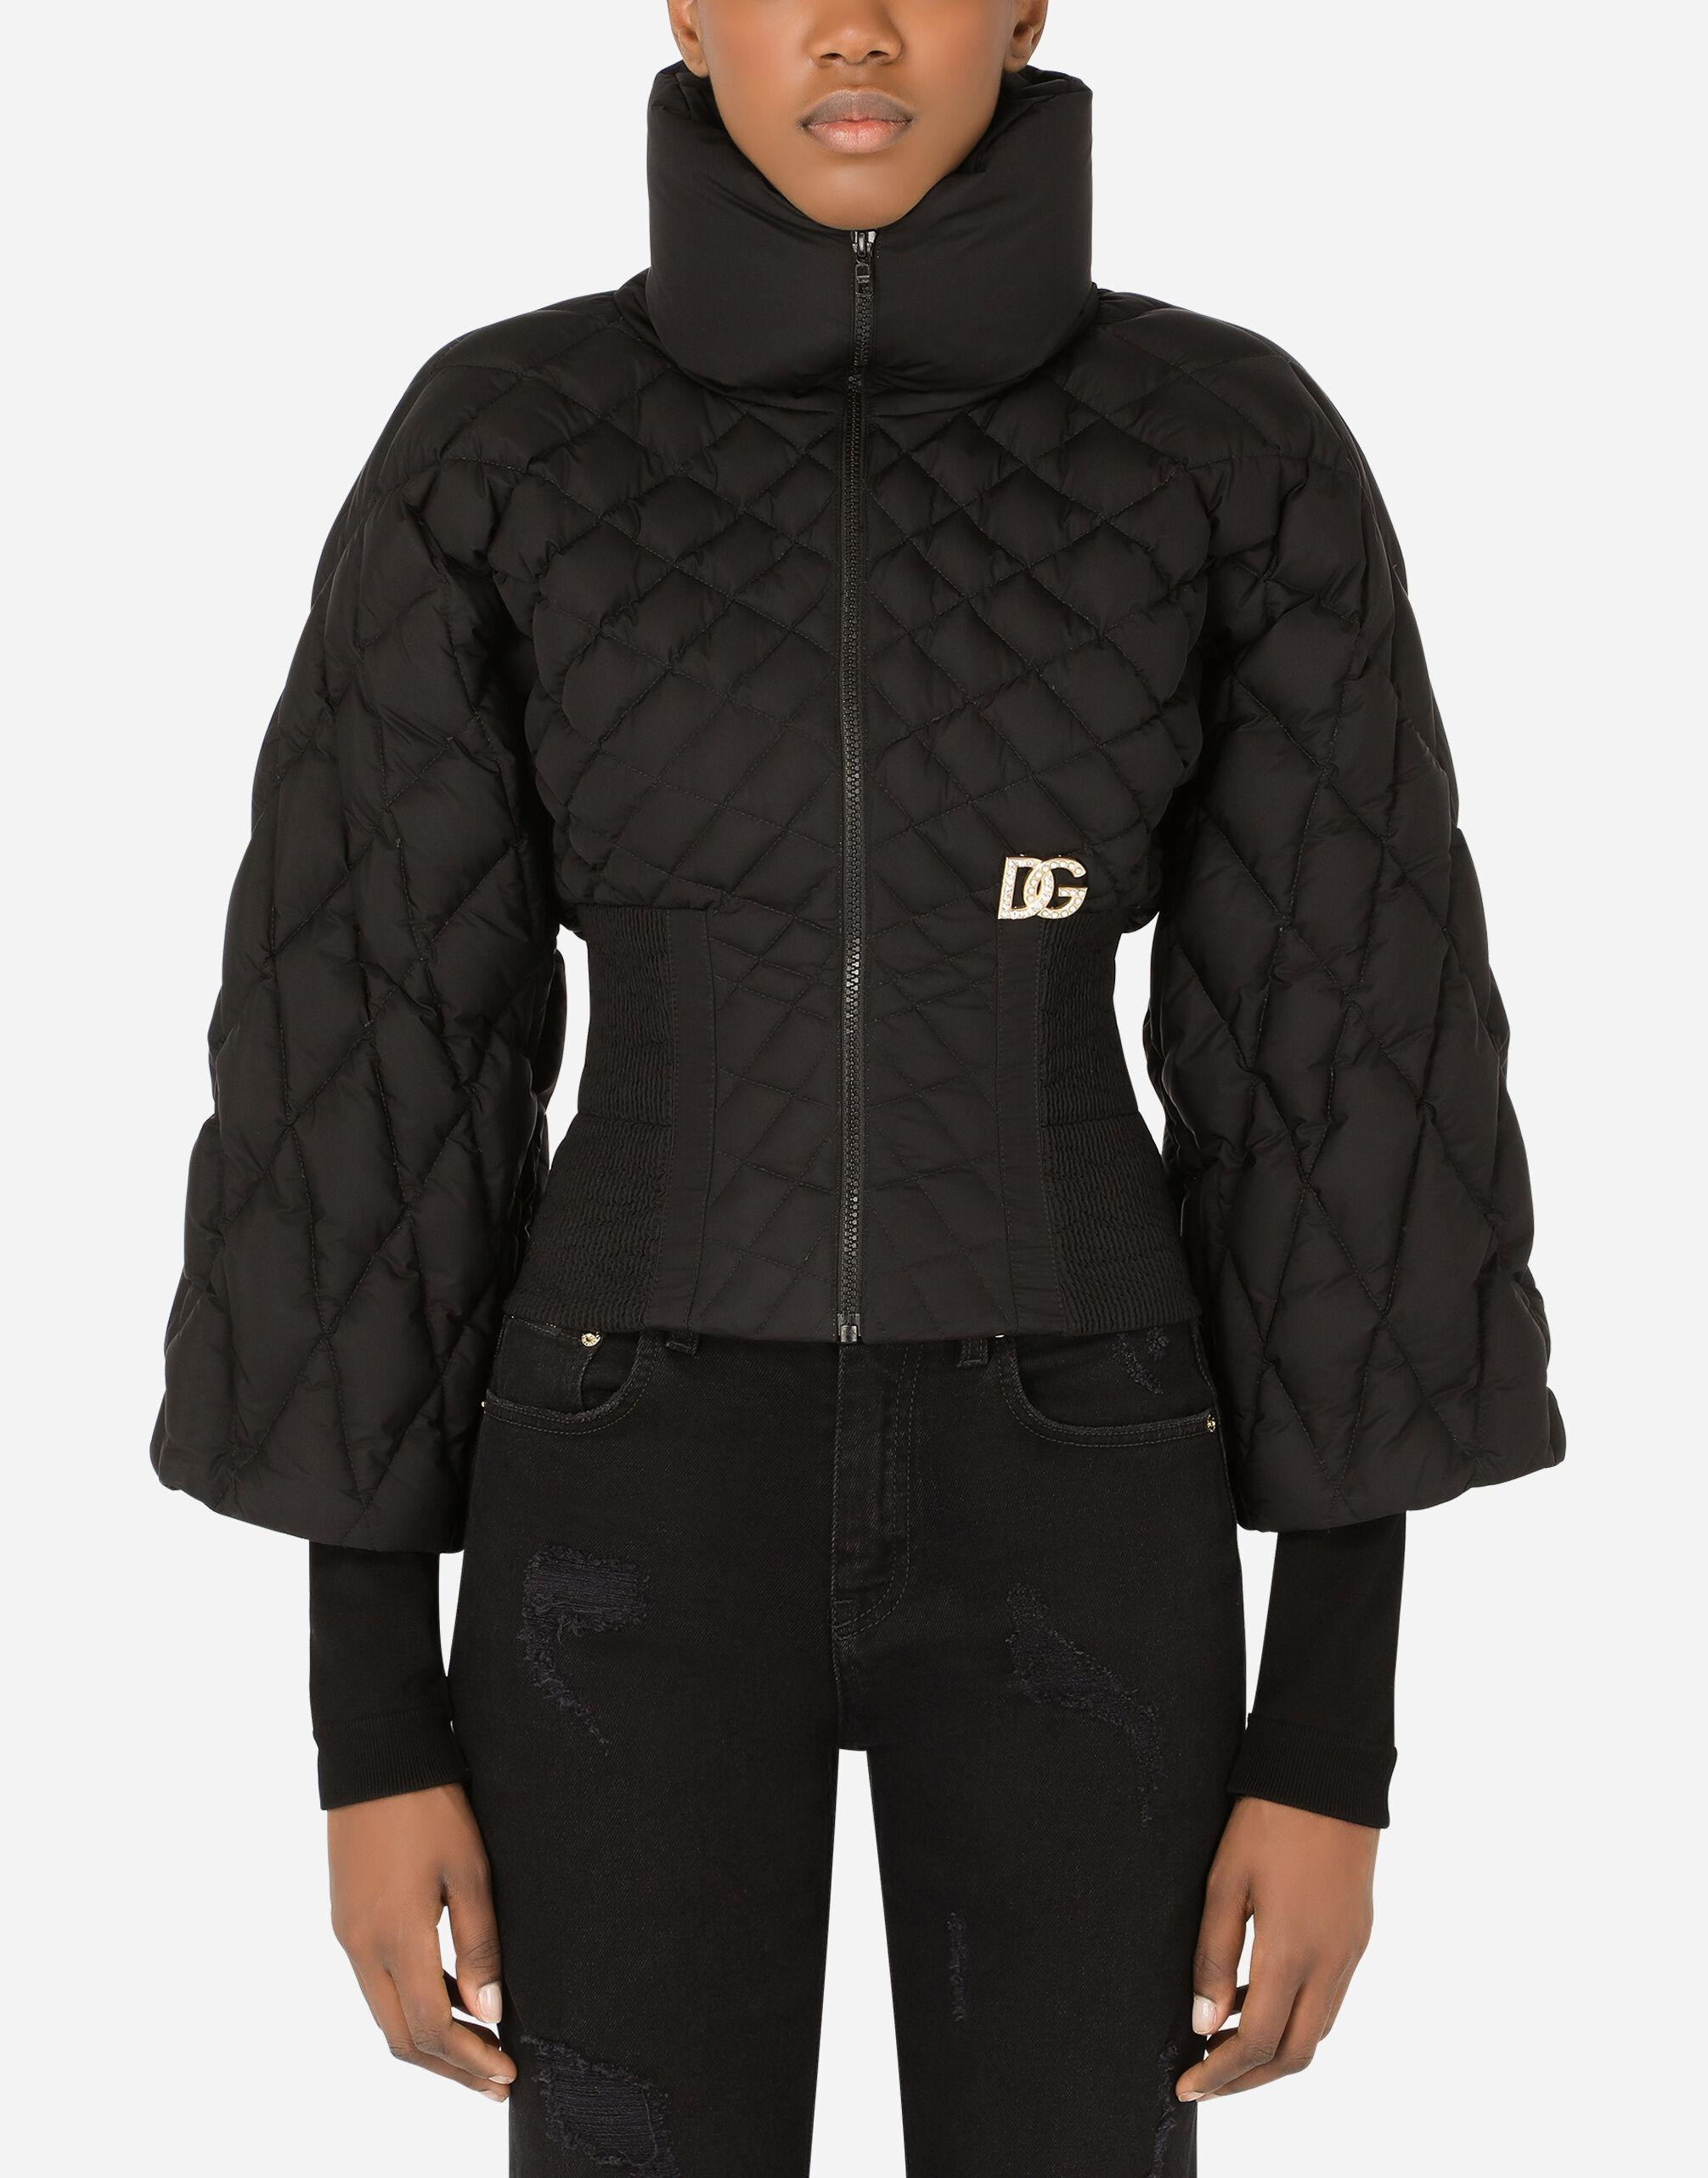 Quilted nylon jacket with knit sleeves and crystal DG embellishment